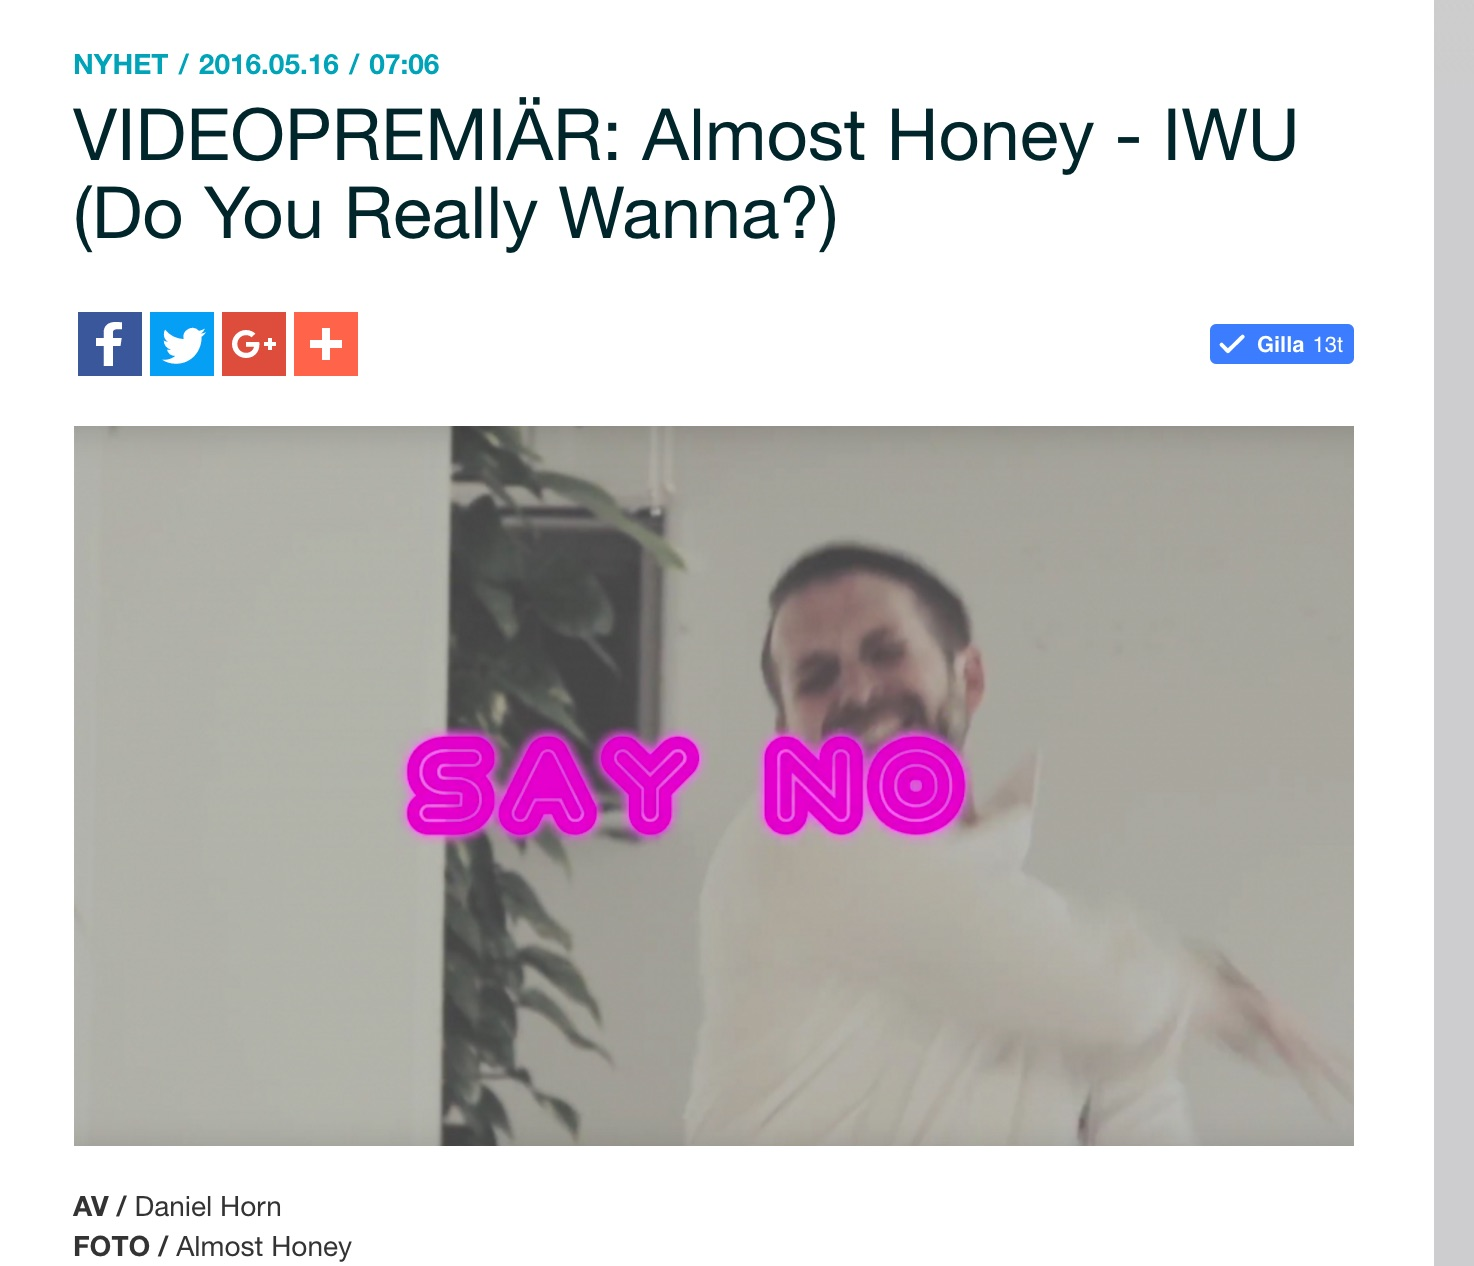 VIDEOPREMIÄR__Almost_Honey_-_IWU__Do_You_Really_Wanna__